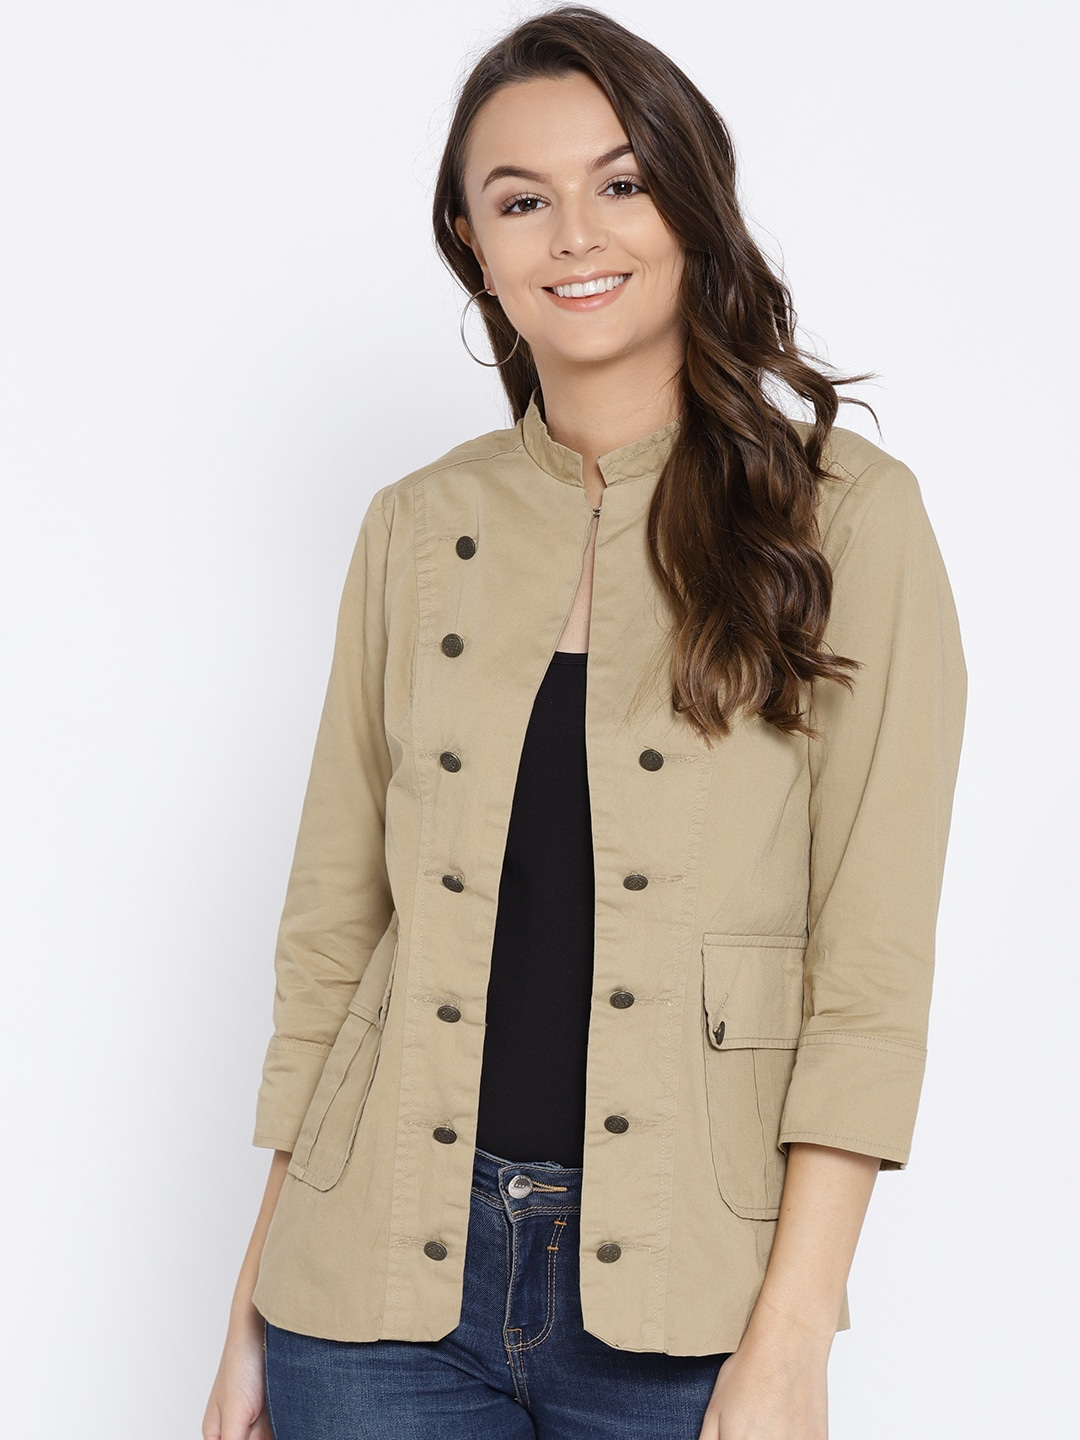 f7989c844b73 Jackets for Women - Buy Casual Leather Jackets for Women Online